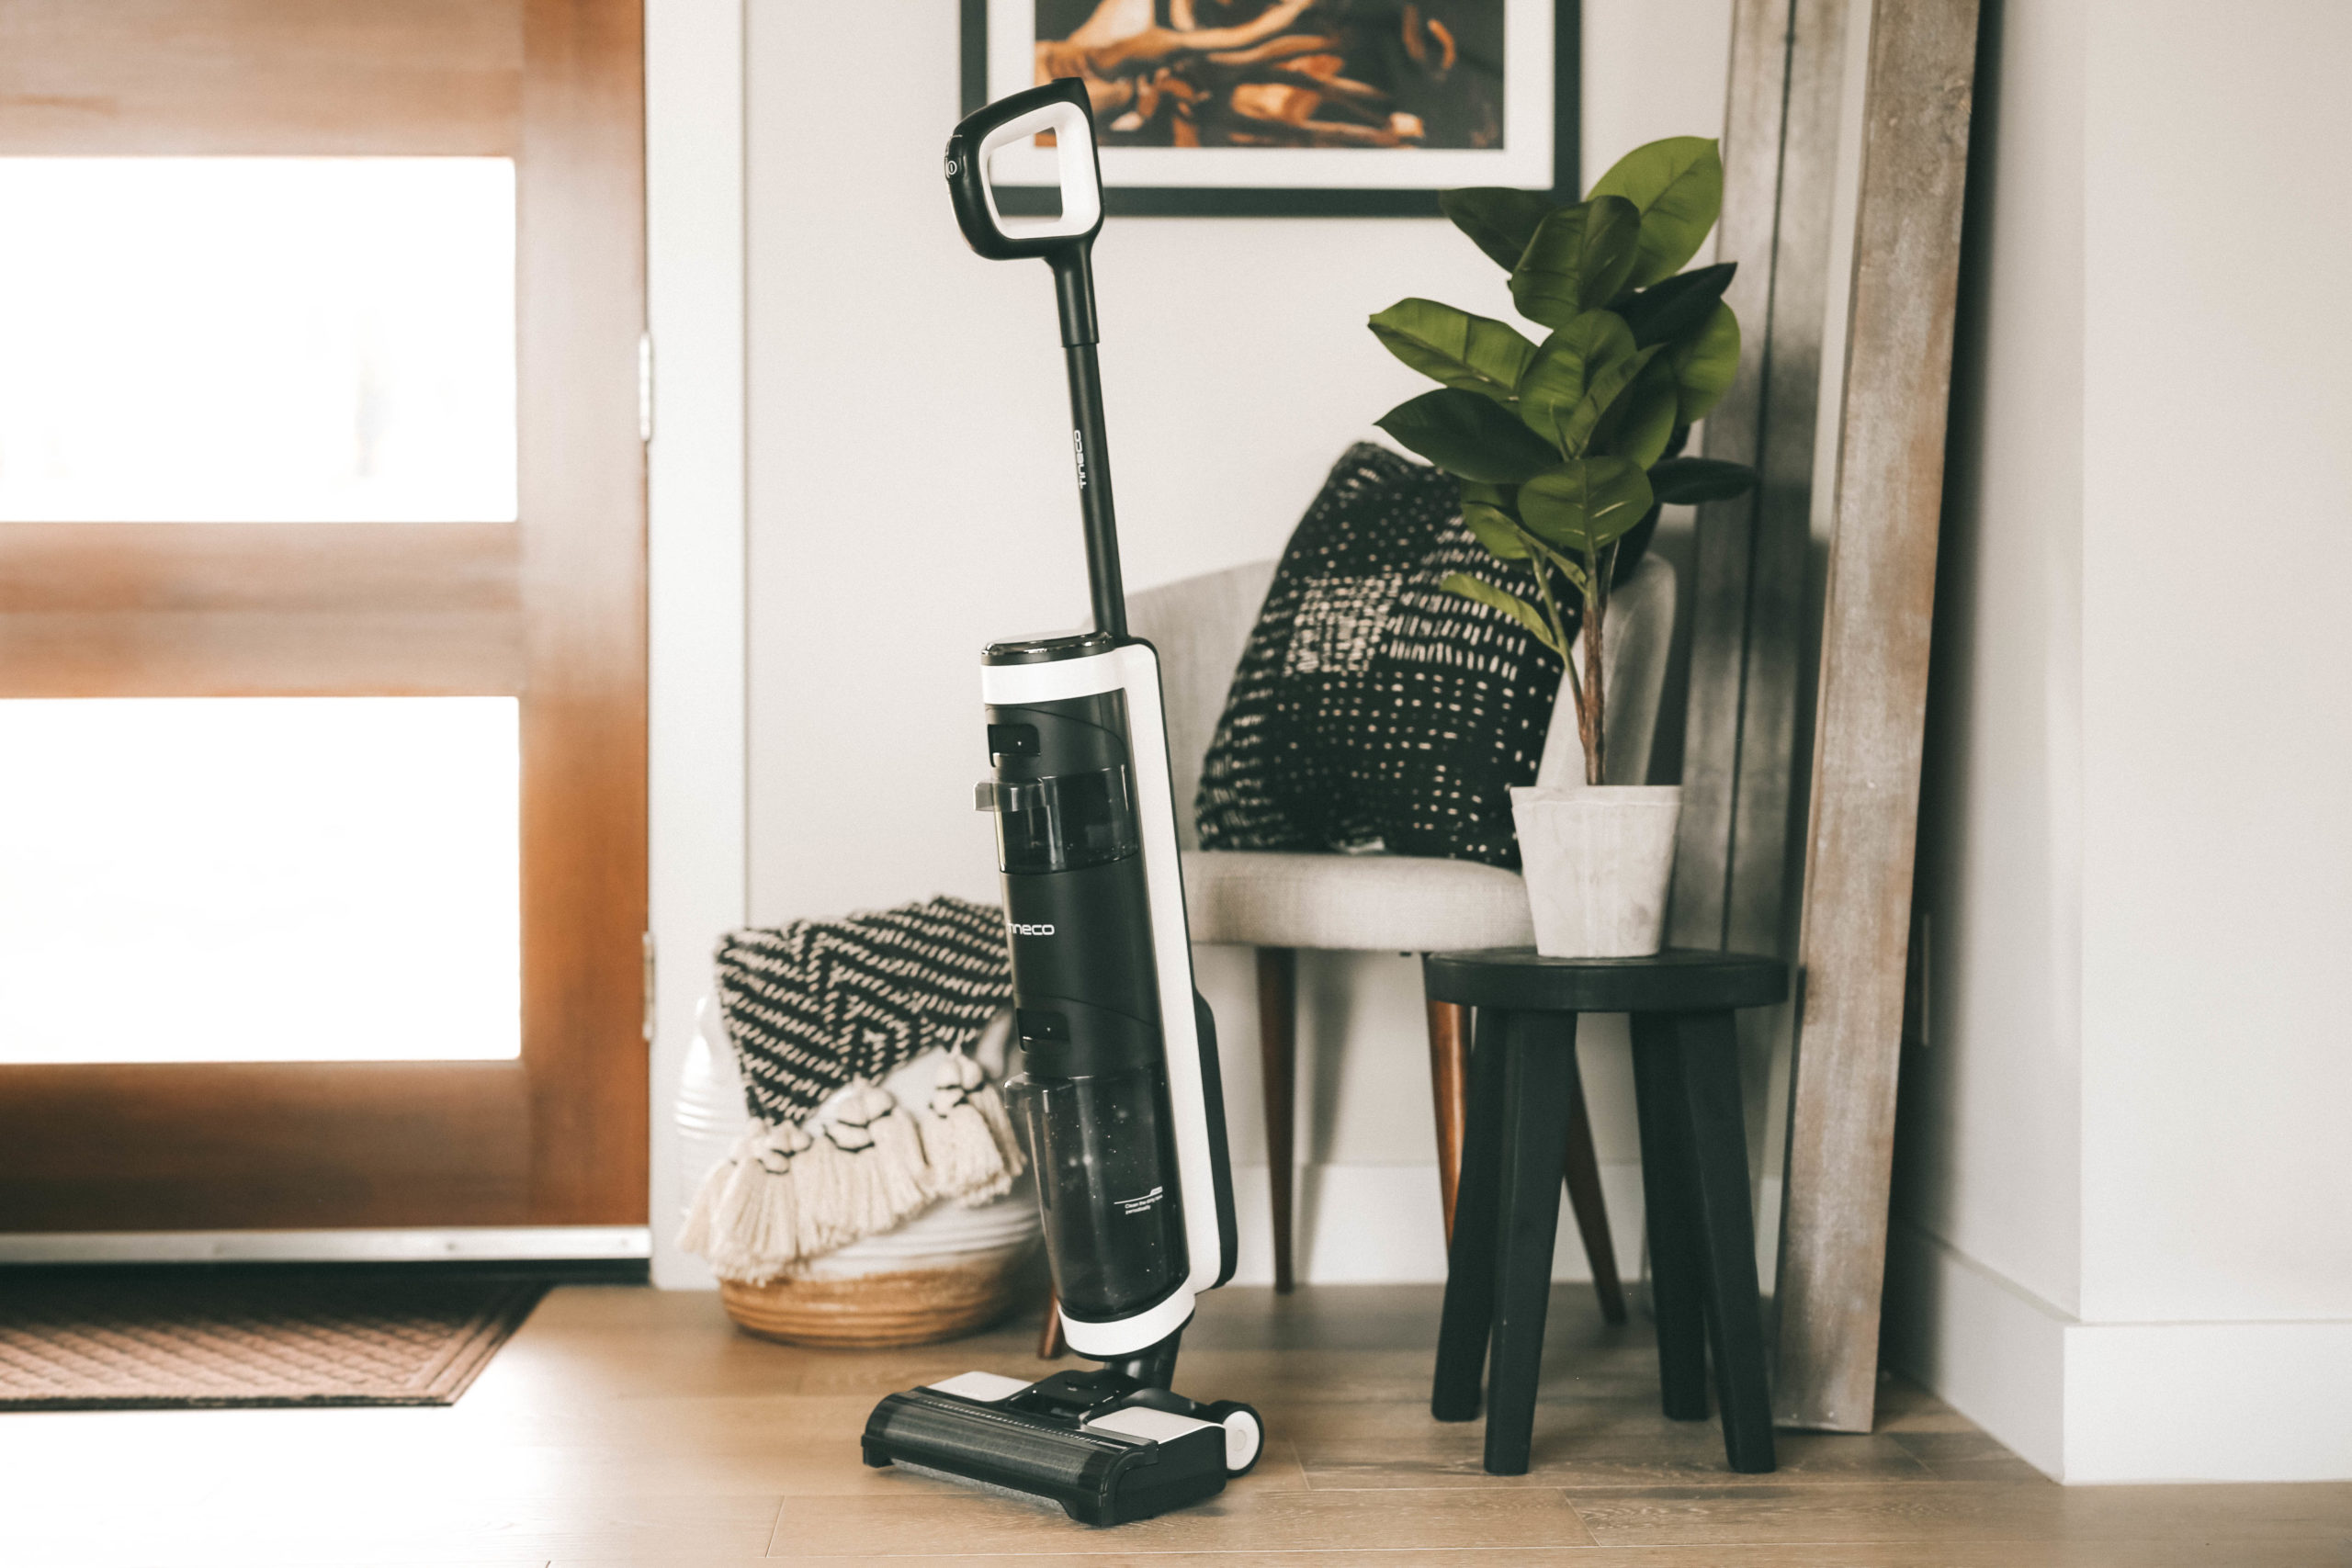 Tineco Floor One S3 by popular Austin lifestyle blog, Dressed to Kill: image of a Tineco Floor One S3 vacuum.